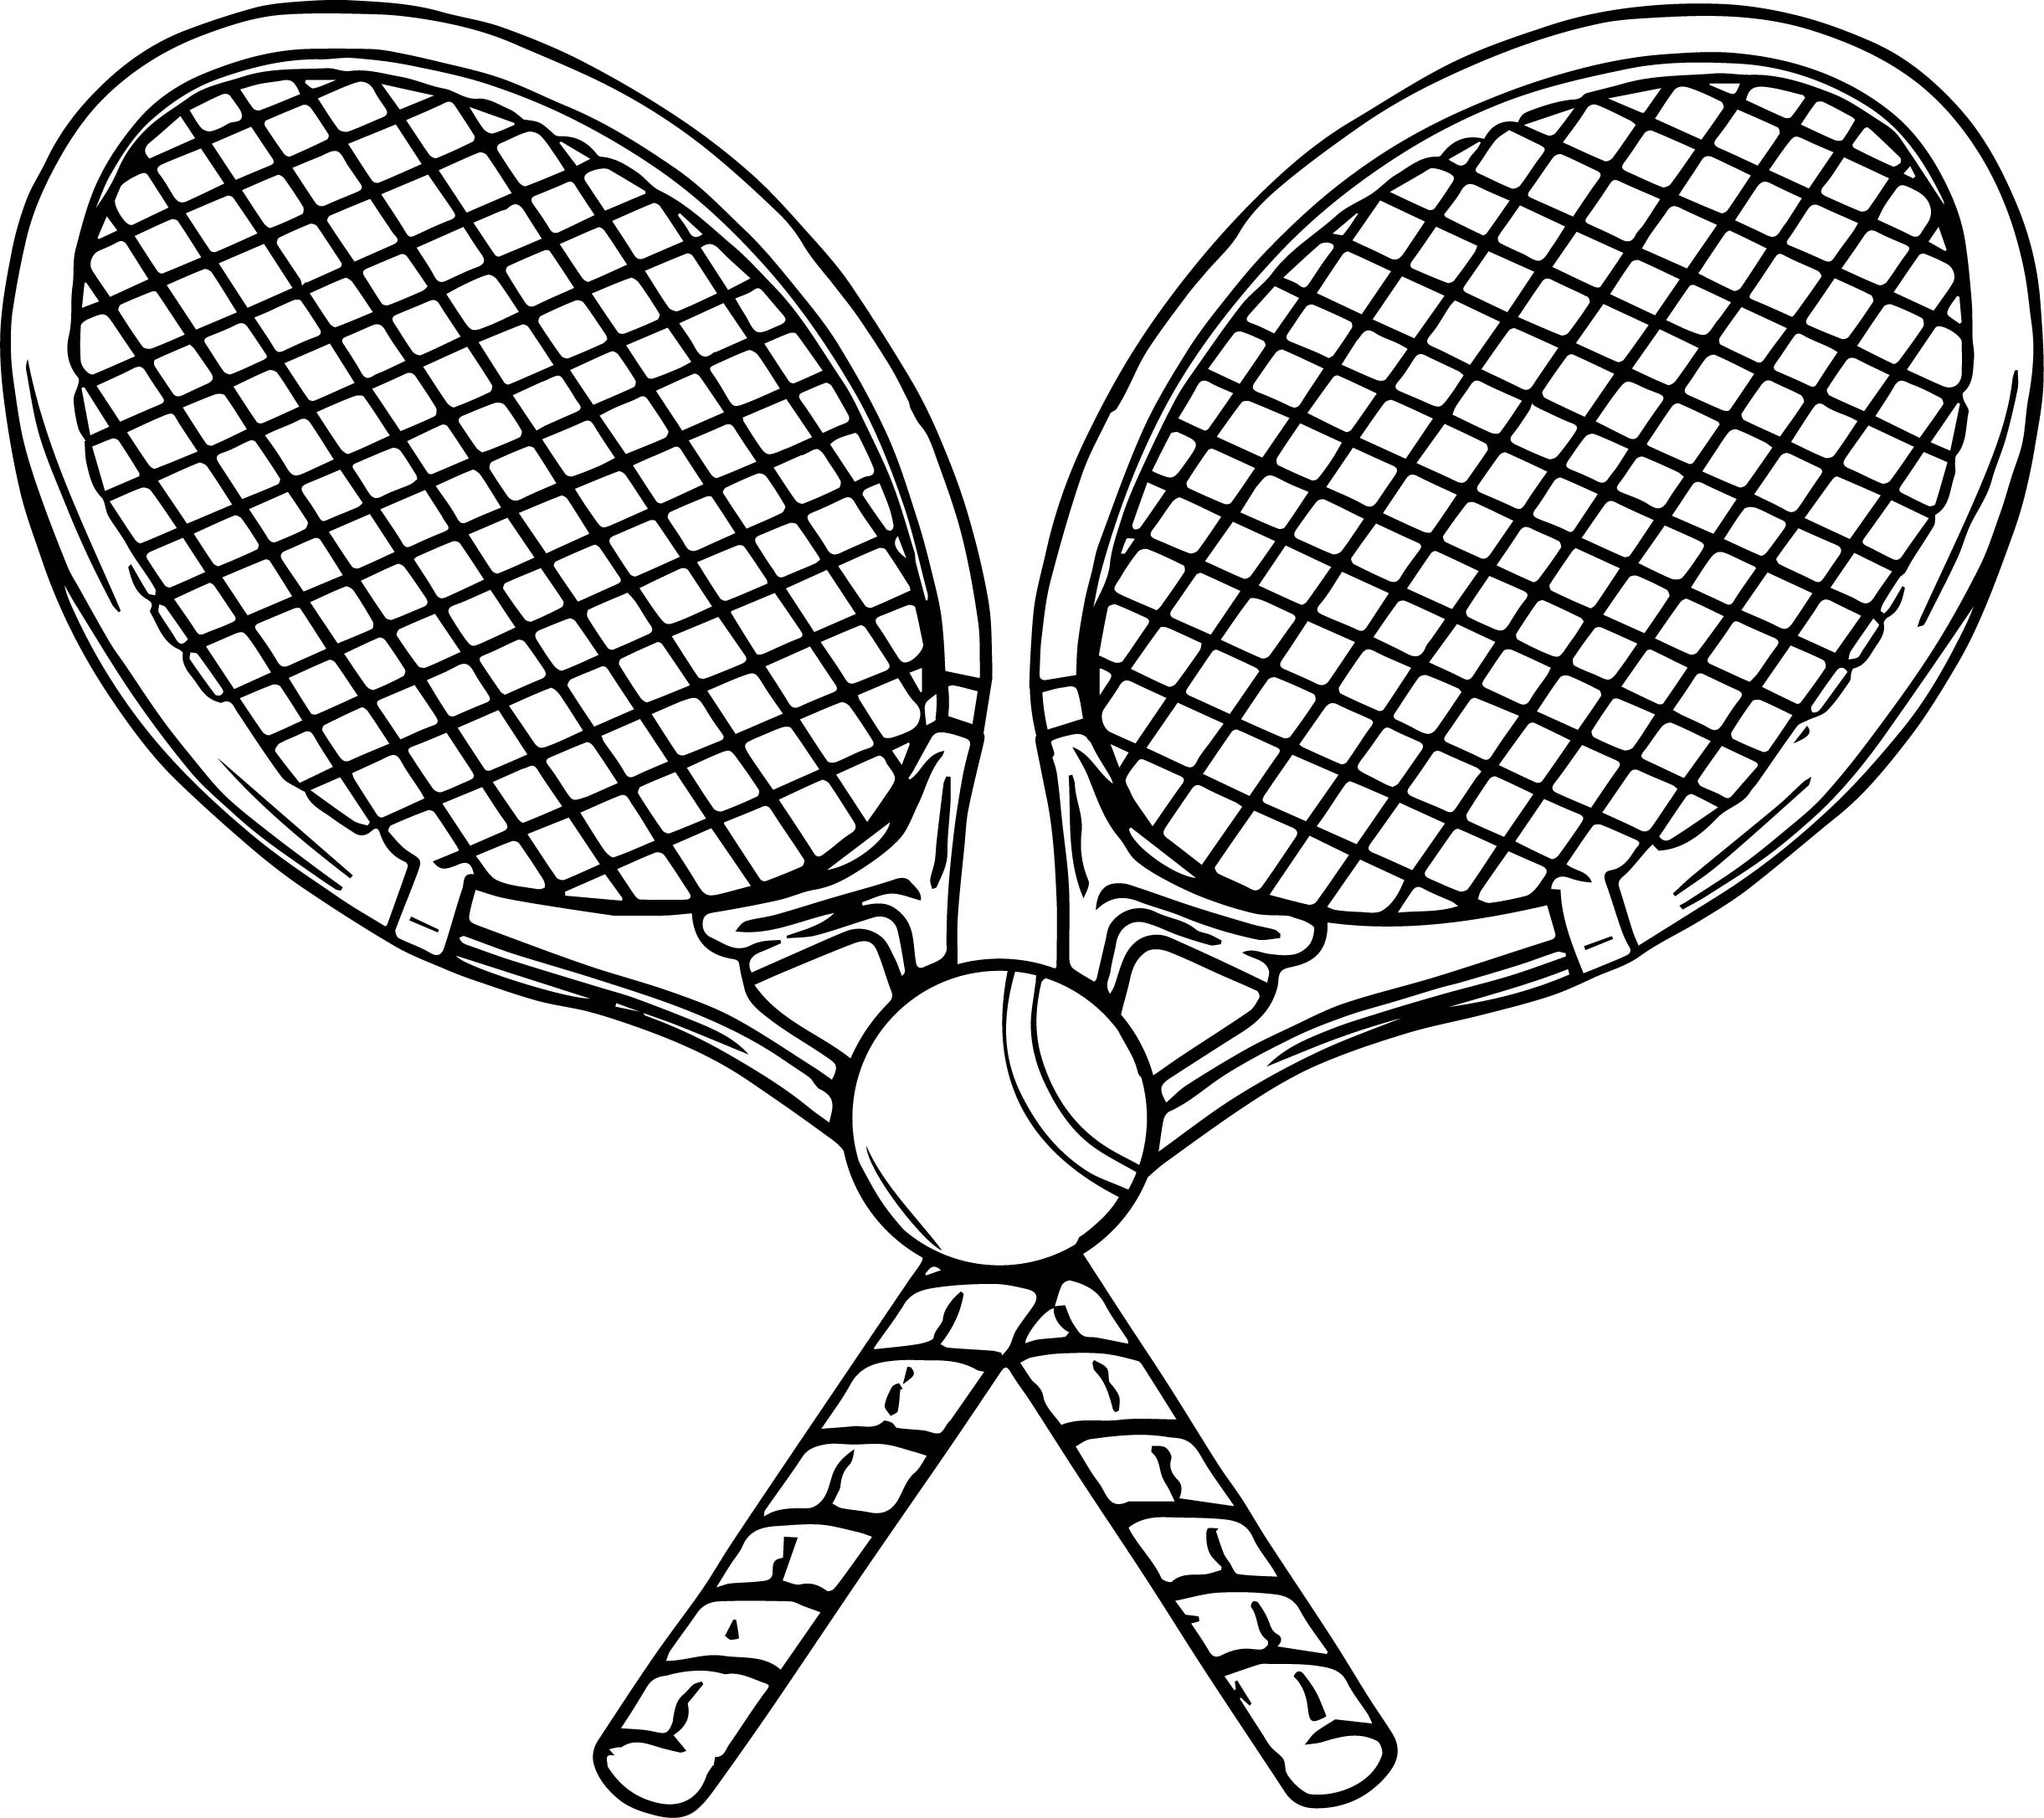 image tennis racquet and ball coloring page wecoloringpage